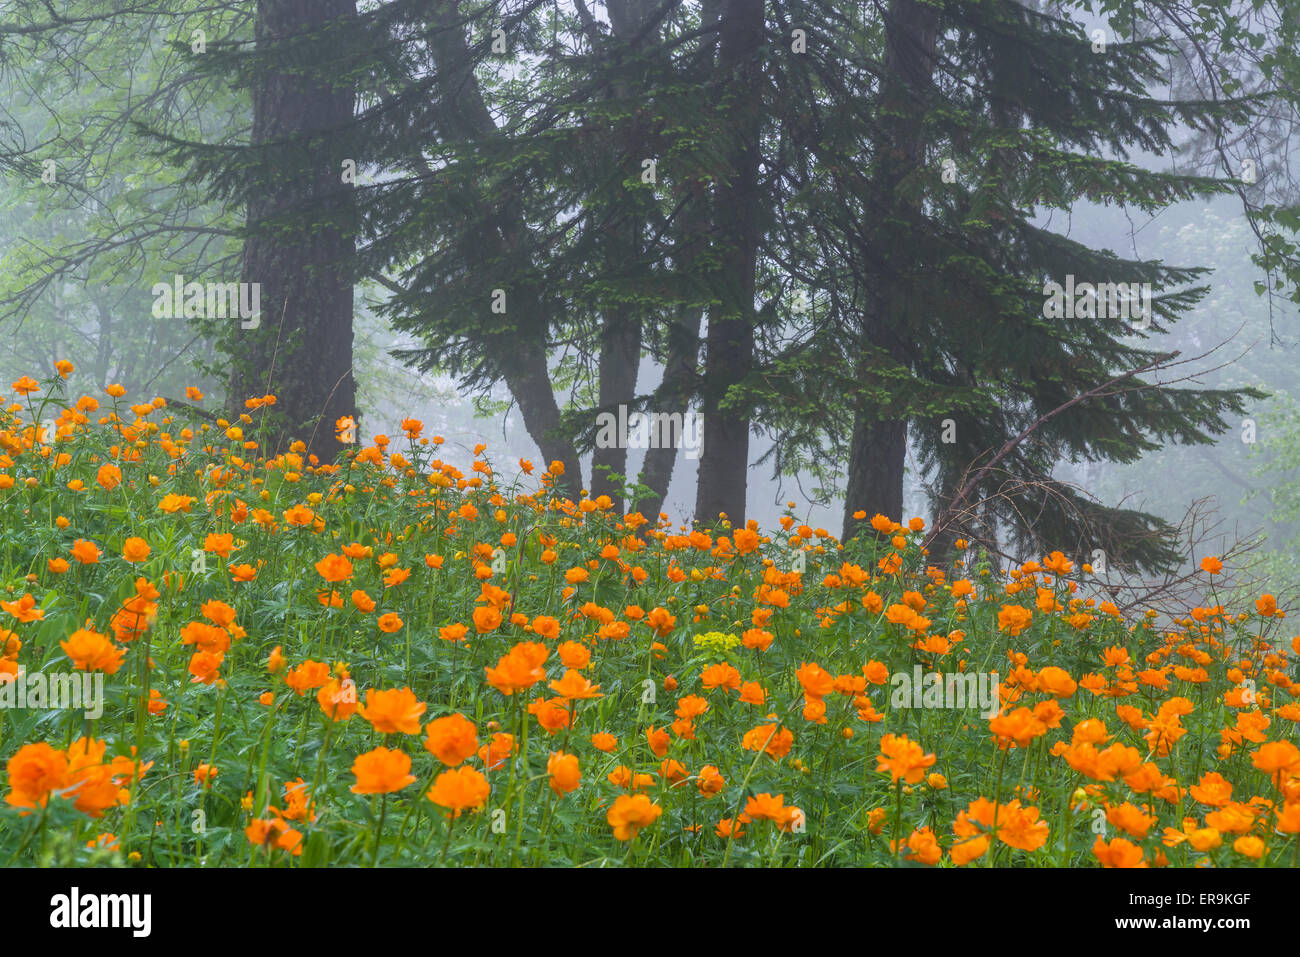 Globe flowers meadow and spruces Altai Siberia Russia - Stock Image